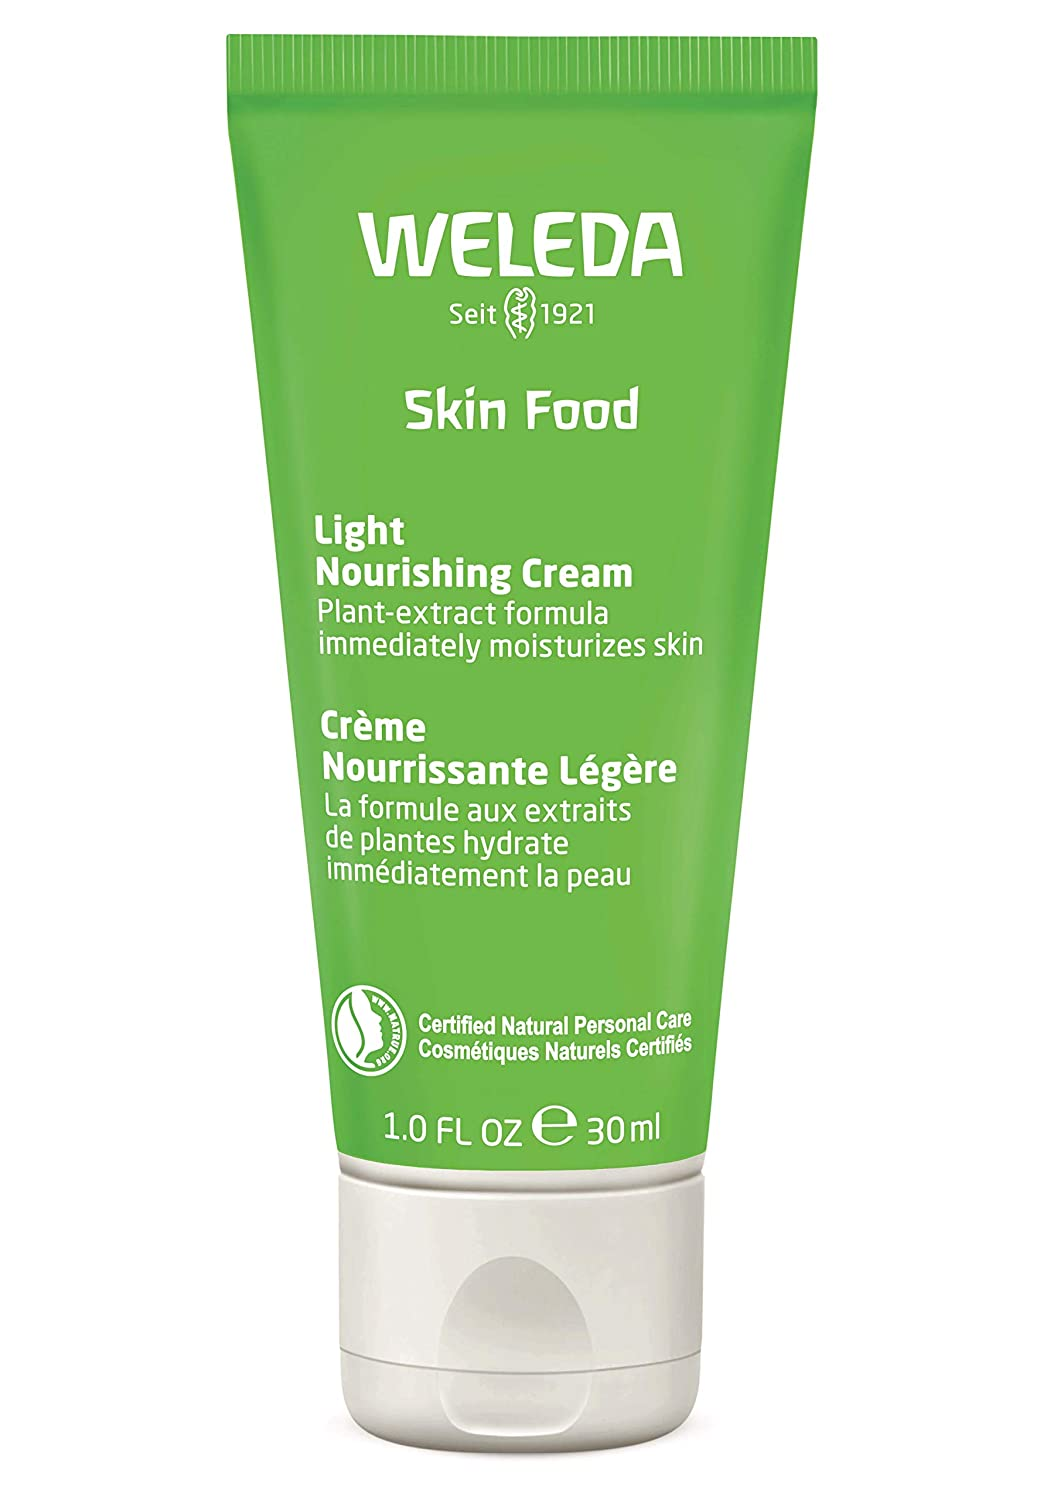 Weleda Skin Food Light Nourishing Cream Small, 1.0 Fluid Ounce